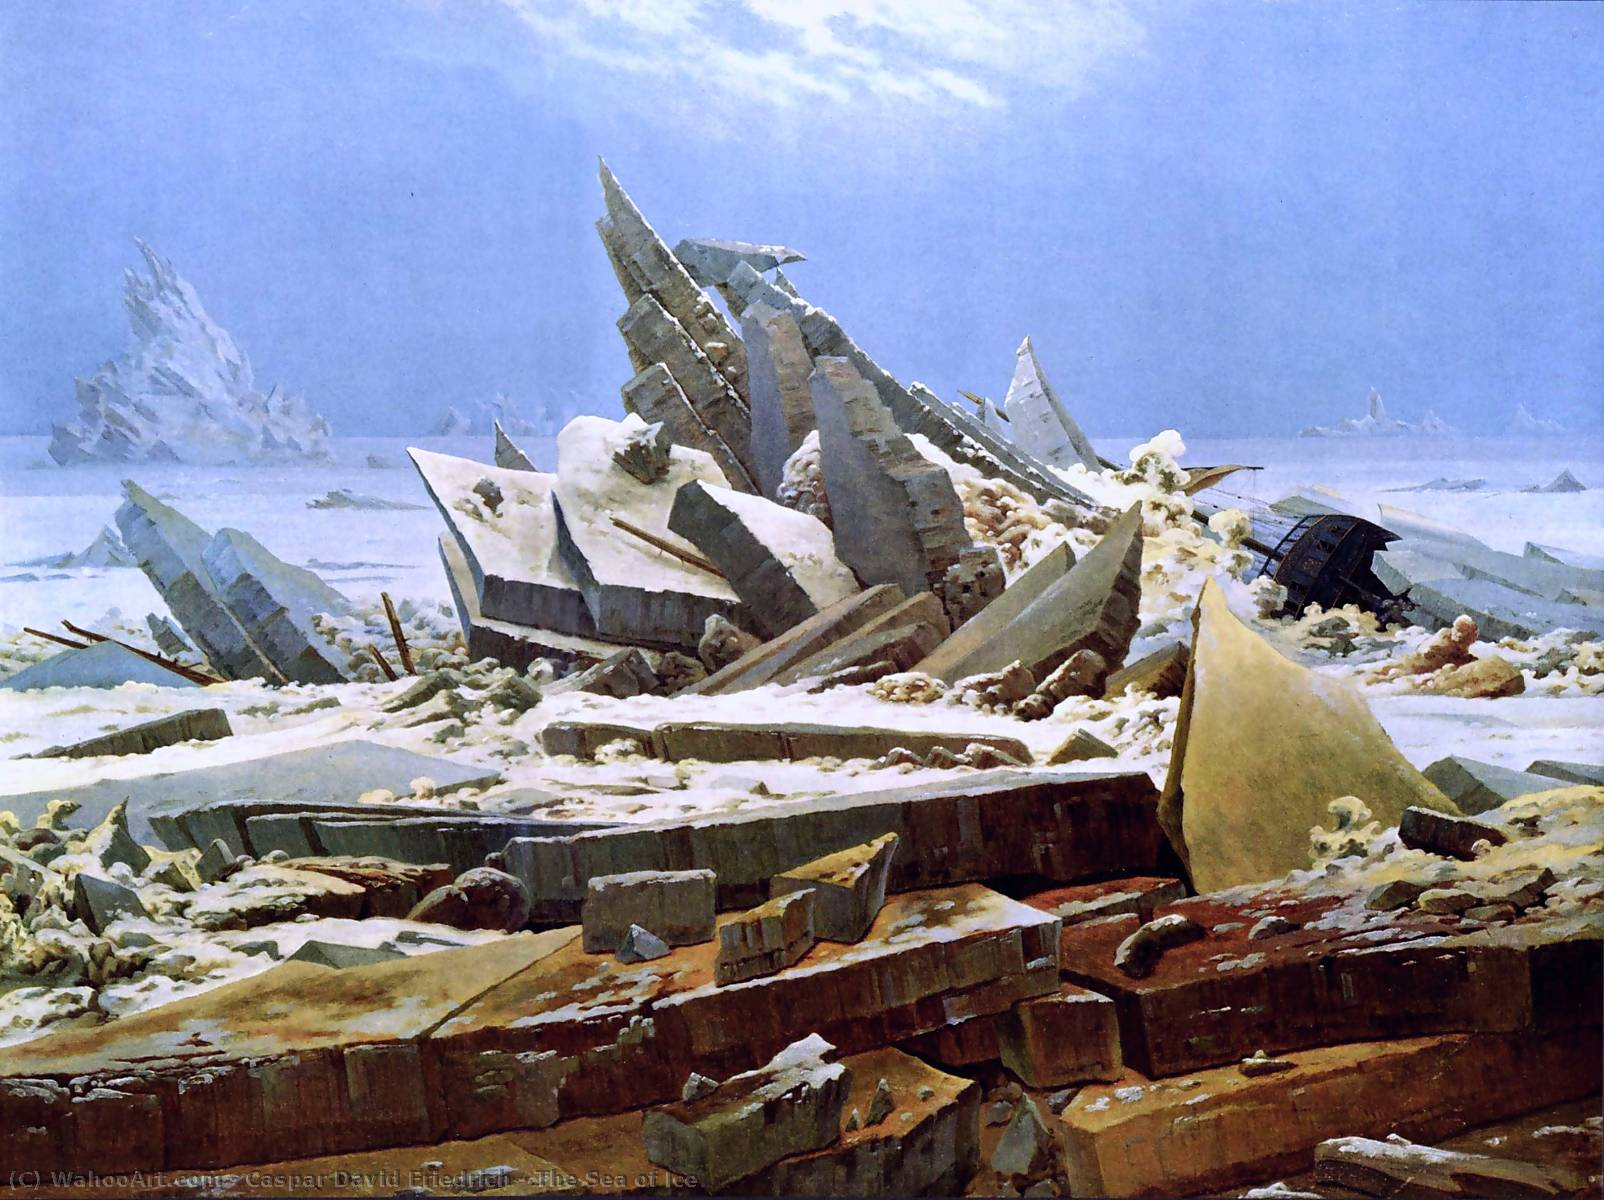 Achat Reproductions De Qualité Musée | La Mer de Glace de Caspar David Friedrich | Most-Famous-Paintings.com